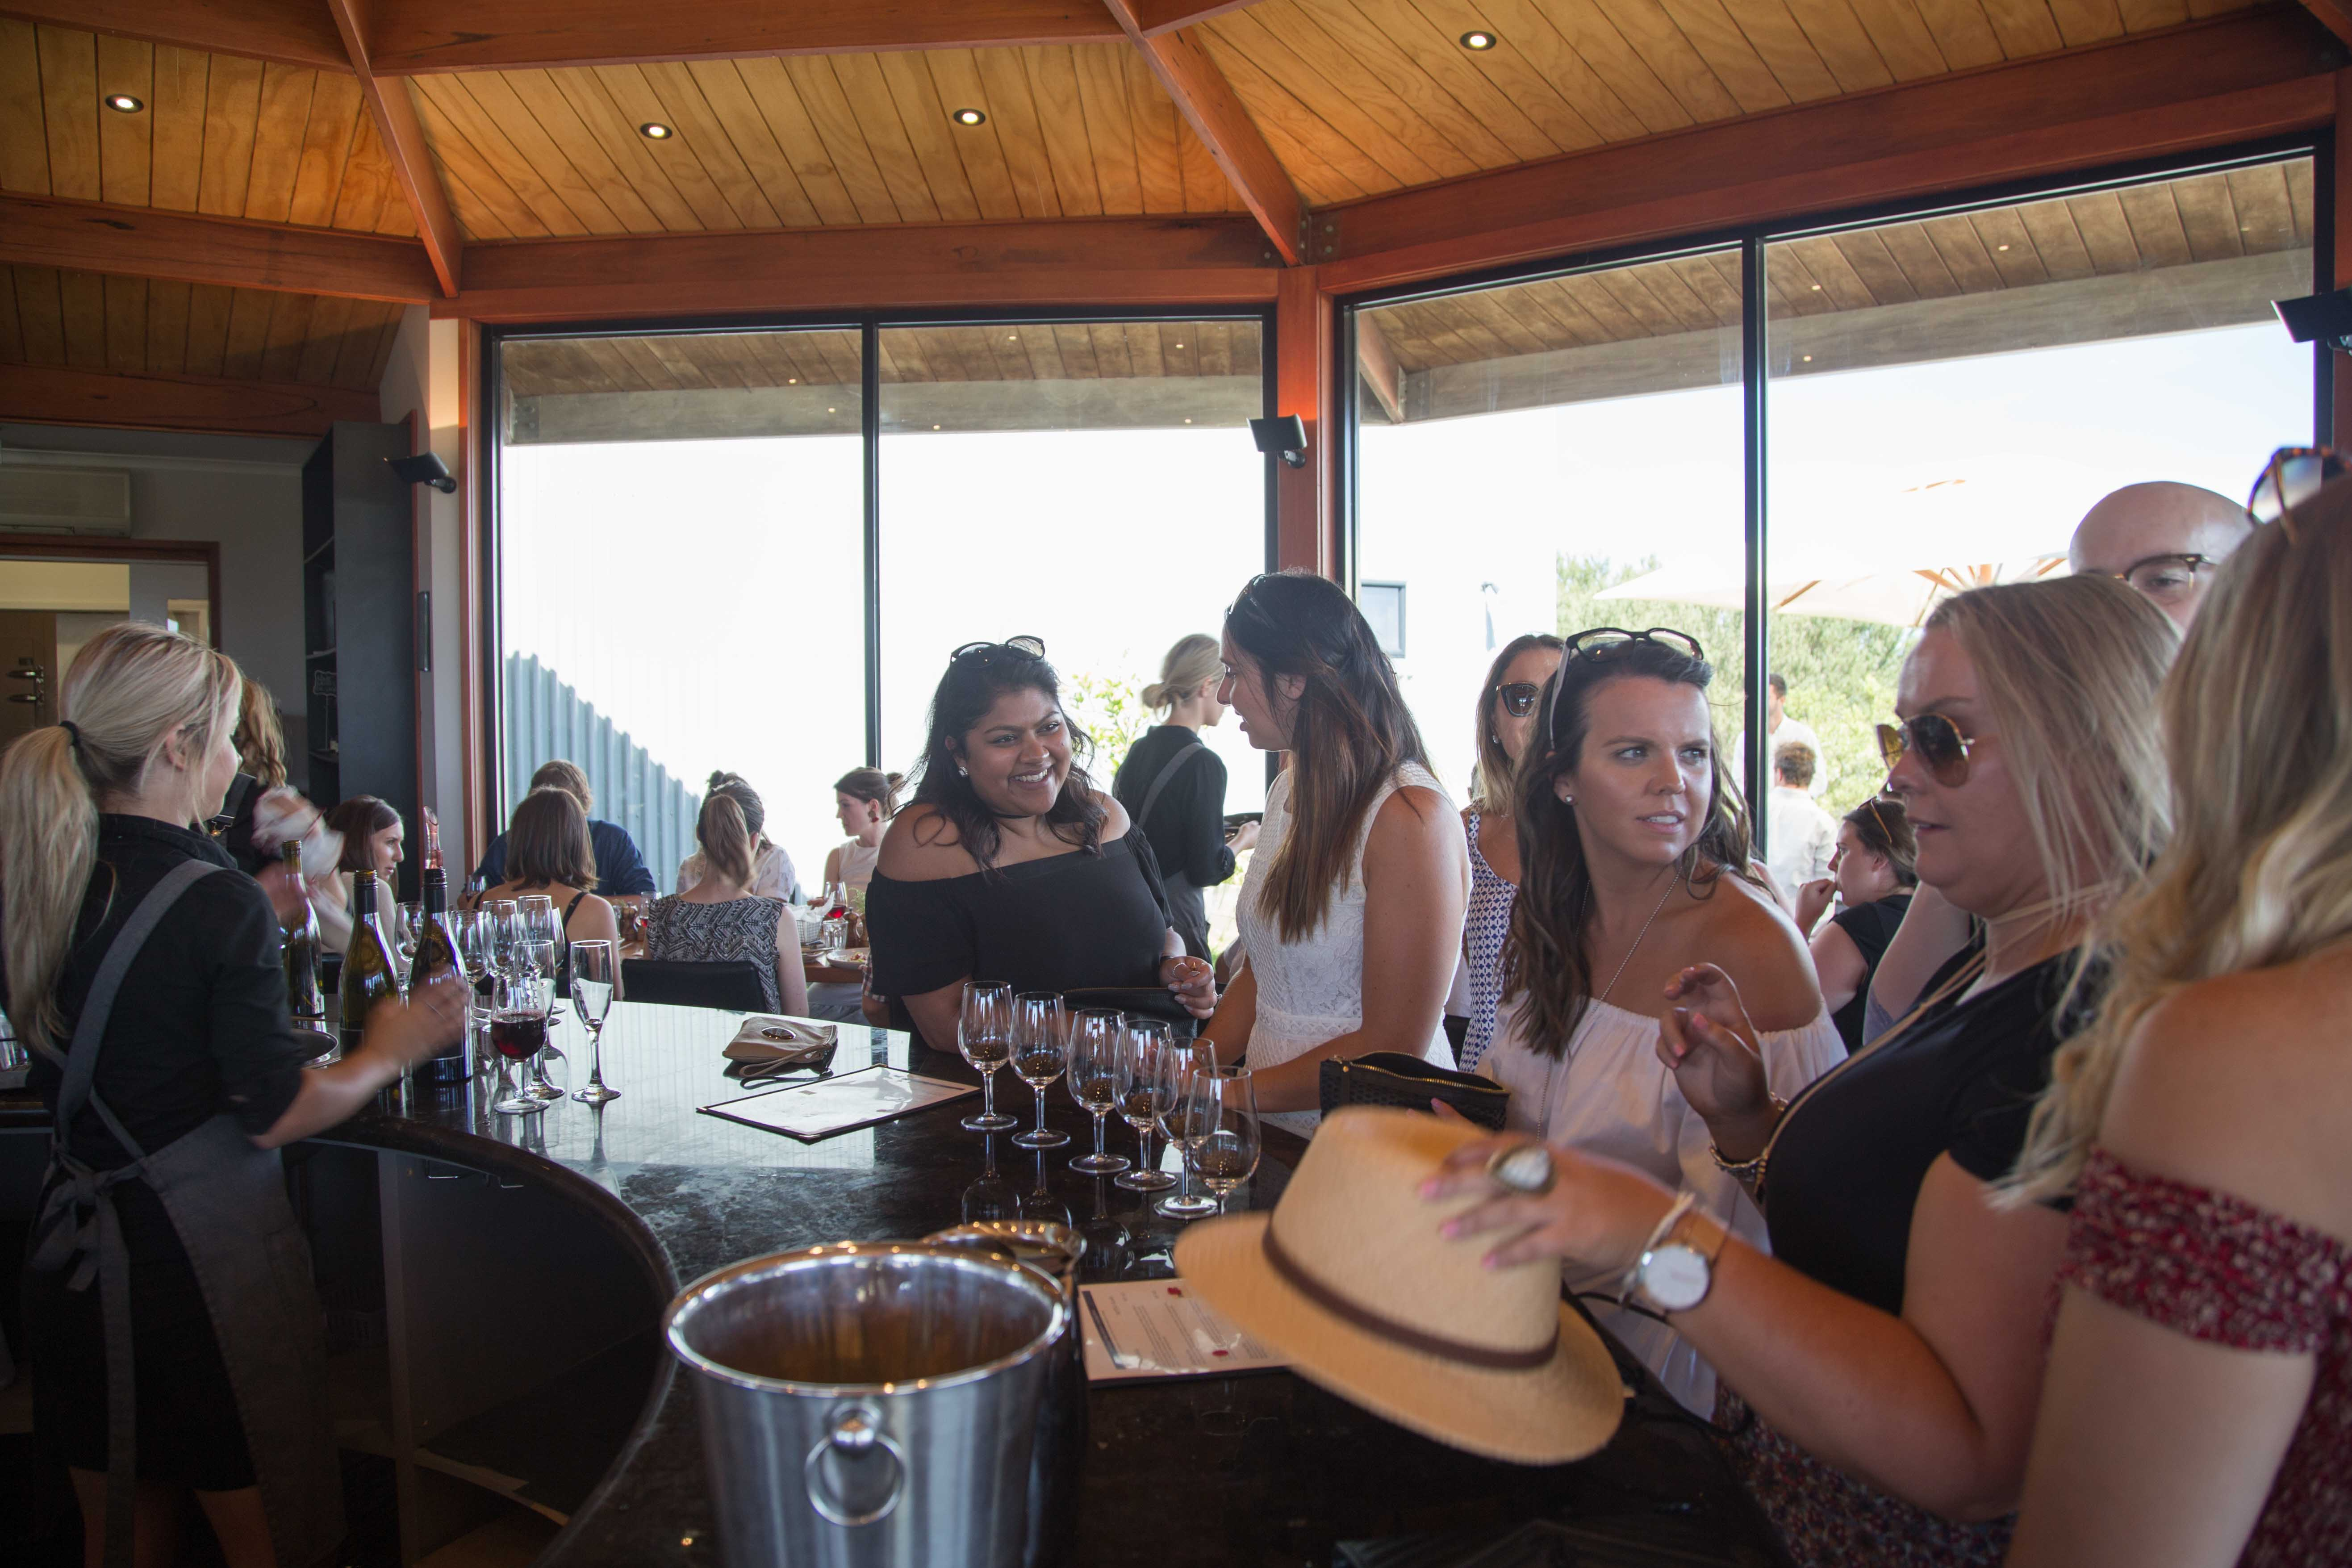 Wine tasting at The Cups Estate